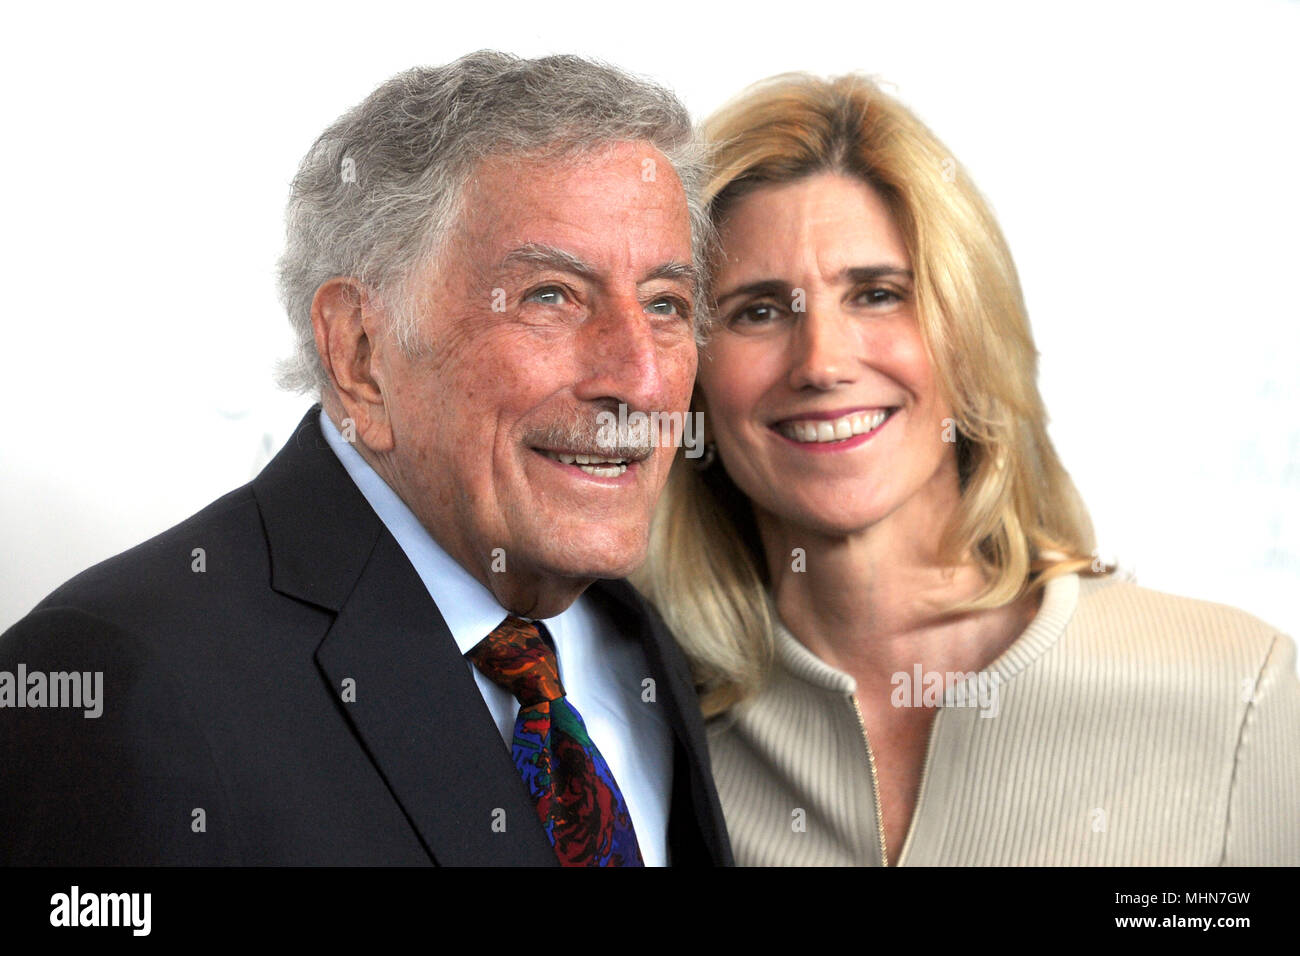 Tony Bennett and his wife Susan Crow attending the 45th Chaplin Award Gala at Alice Tully Hall on April 30, 2018 in New York City. - Stock Image